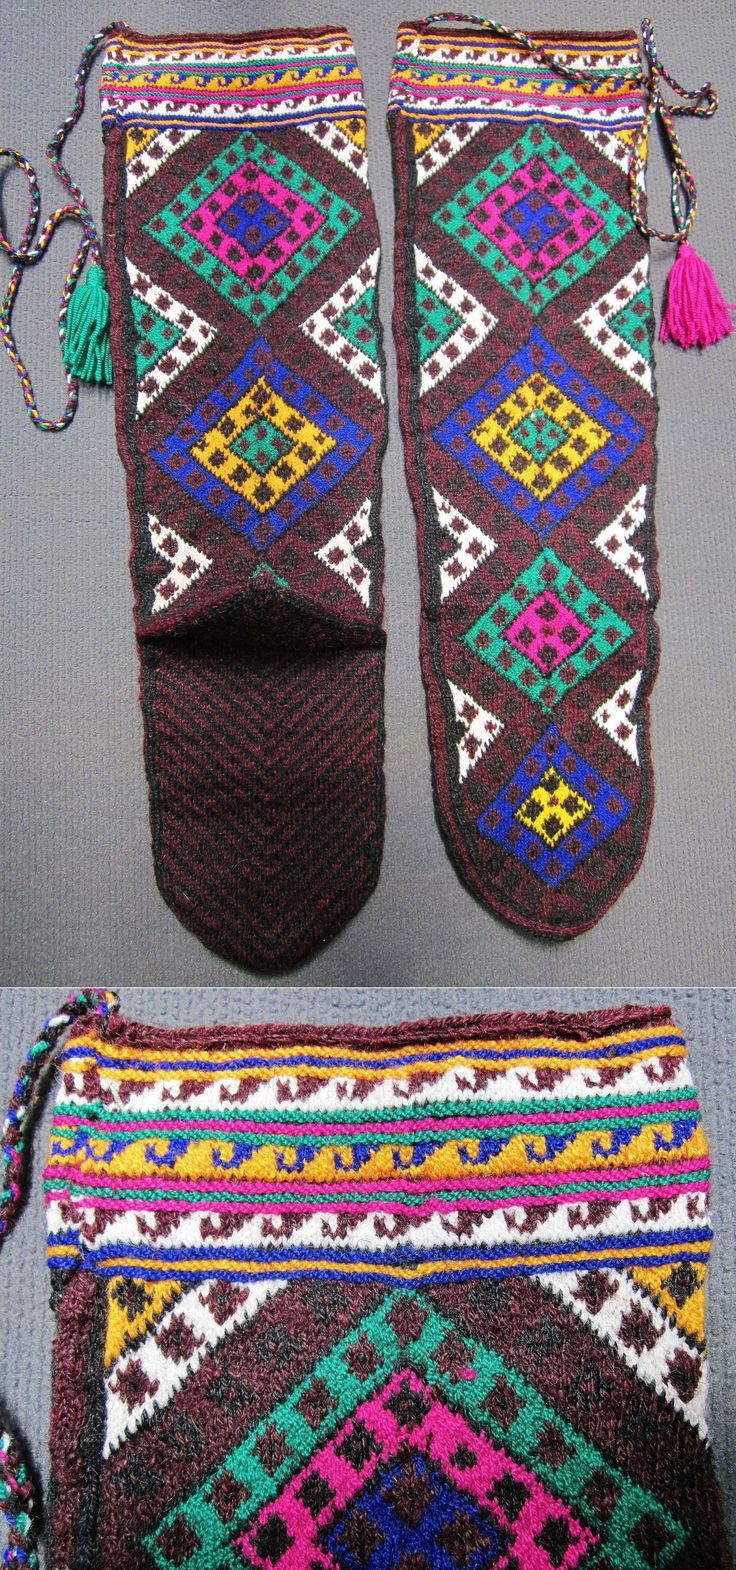 Traditional hand-knitted woollen stockings, for women. From the Sivas province.  Late 20th century.   The main pattern are concentric diamonds called 'ayna' (mirror), which is a charm against evil eye; the horizontal stripes on top of the stockings are filled with small 'çengel' (hook),  another protection against evil eye).  (Inv.nr. çor003 - Kavak Costume Collection - Antwerpen/Belgium).